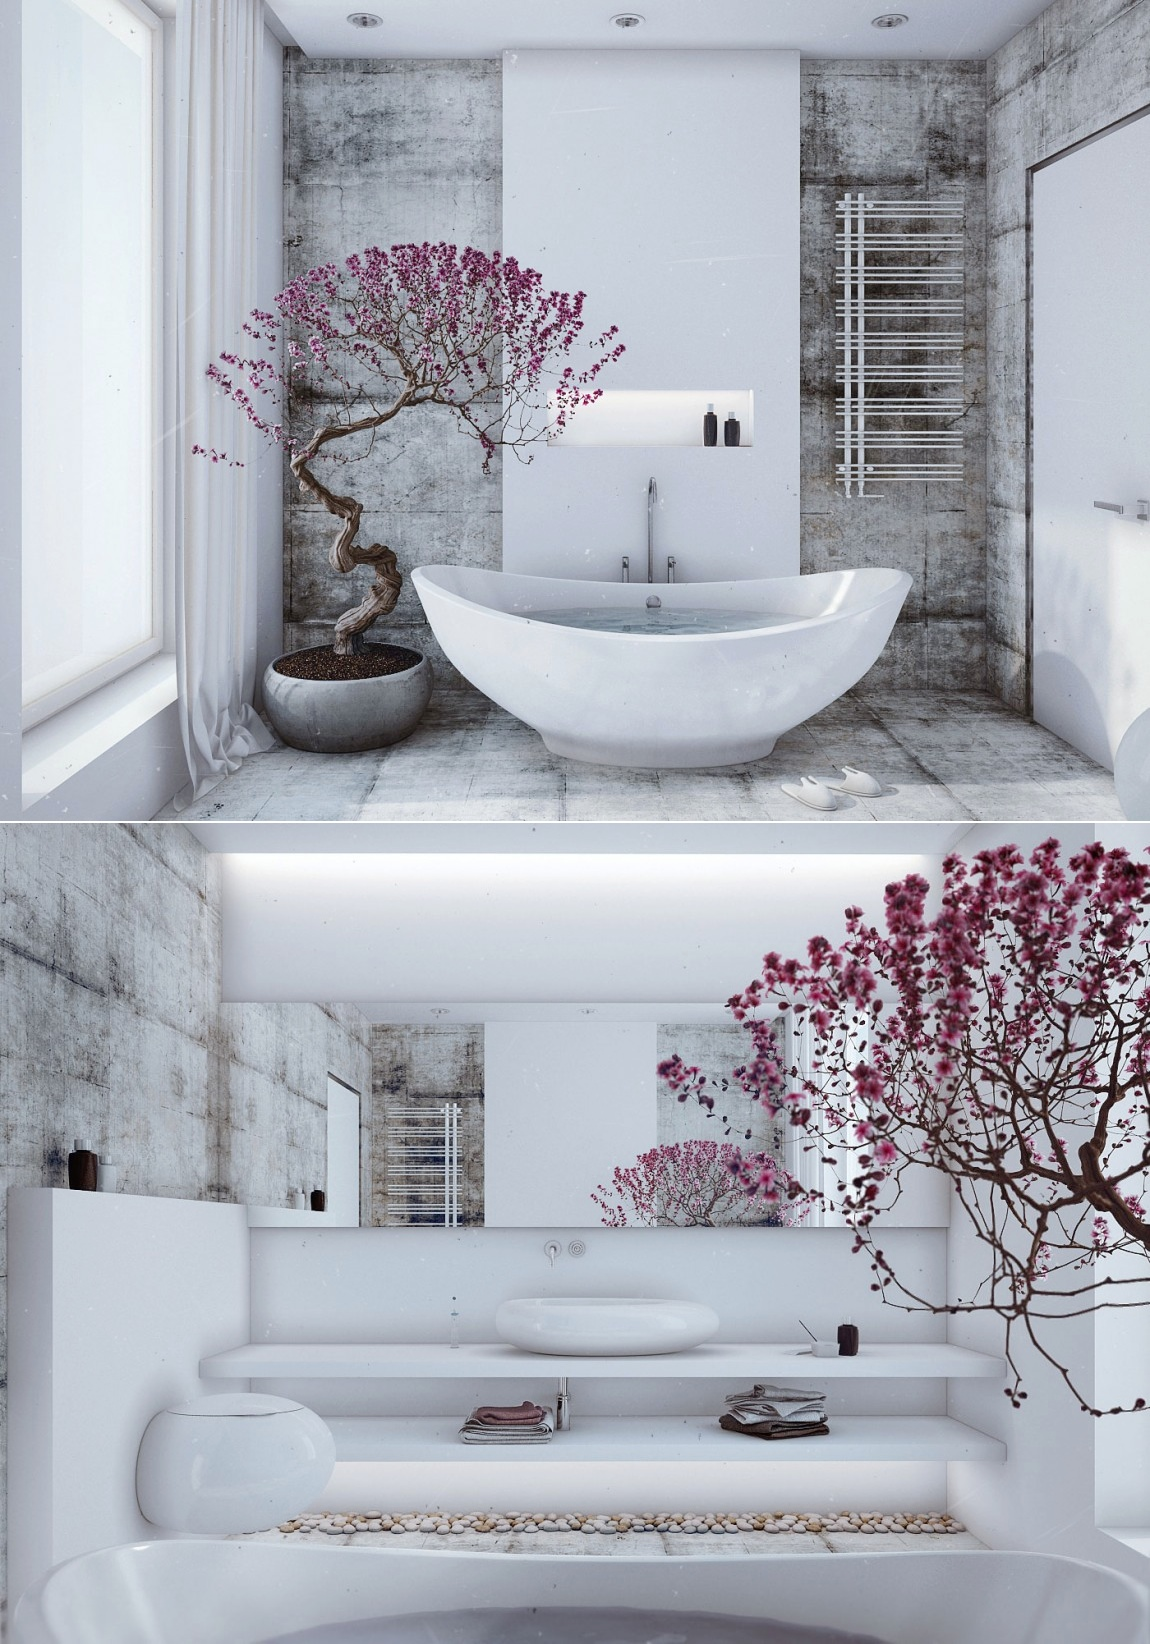 Zen inspired interior design for Asian style bathroom designs